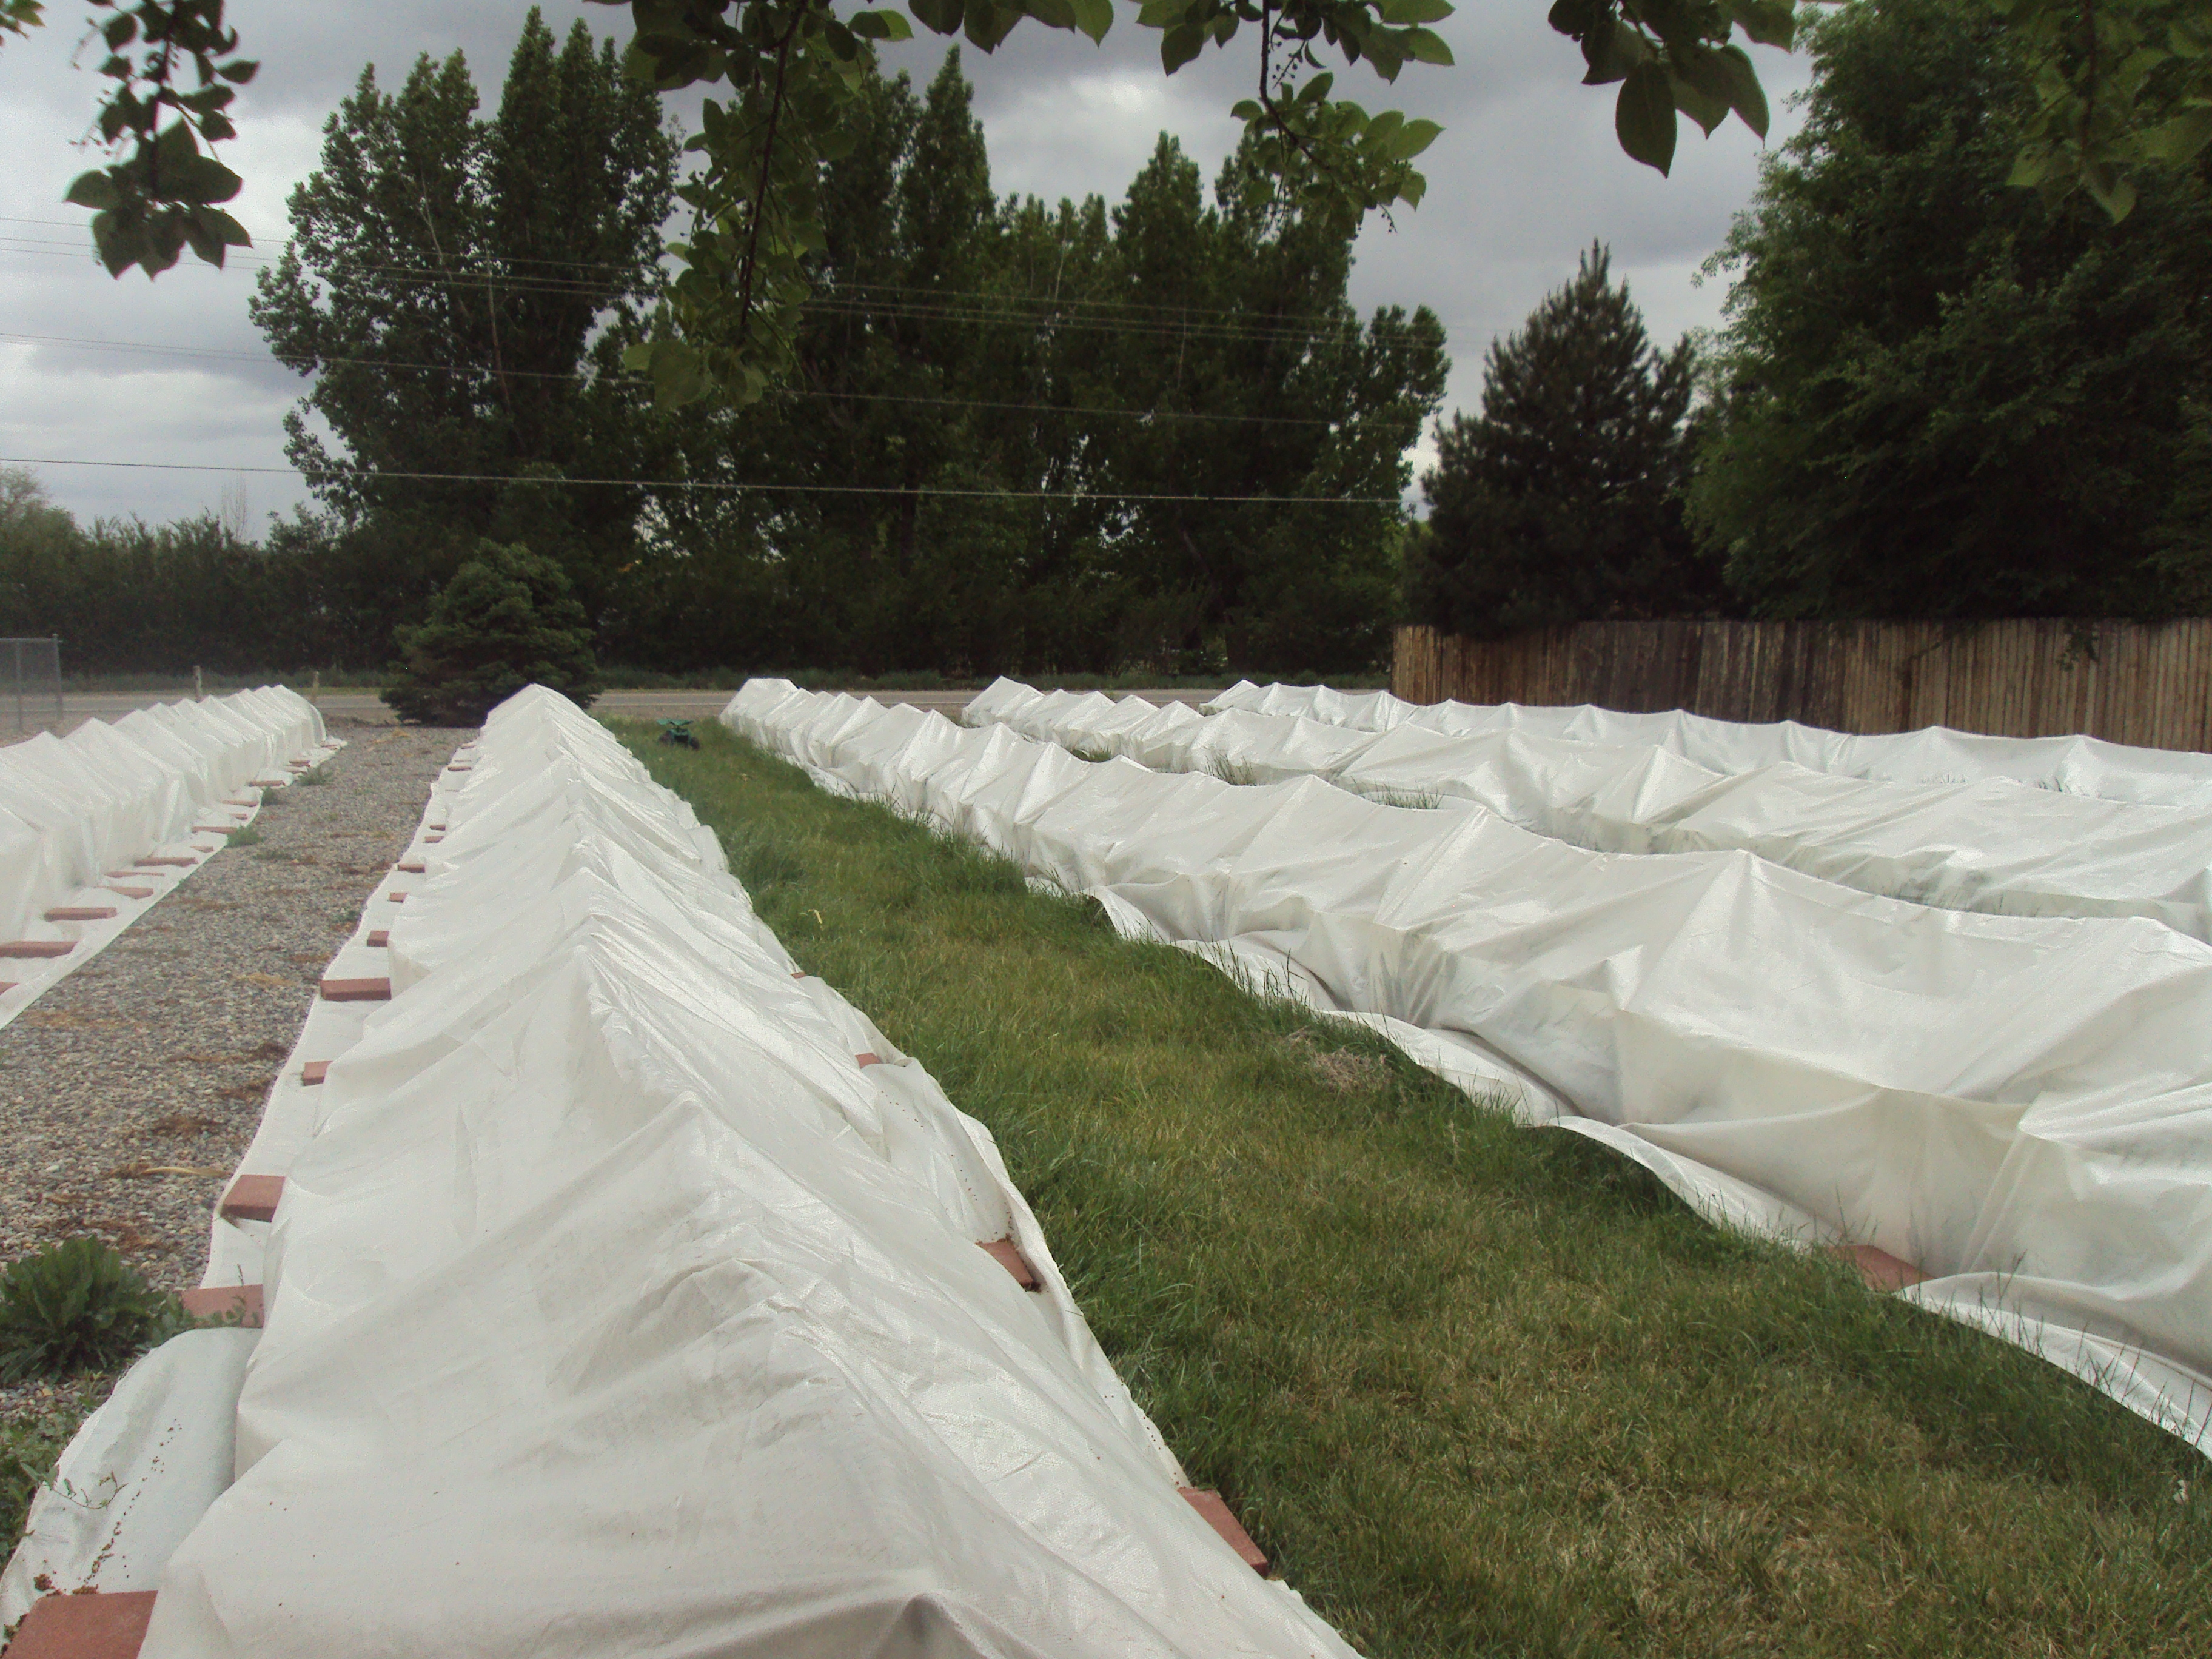 You can see how it tents over the lavender, we don't want the frost blankets to lay directly on top